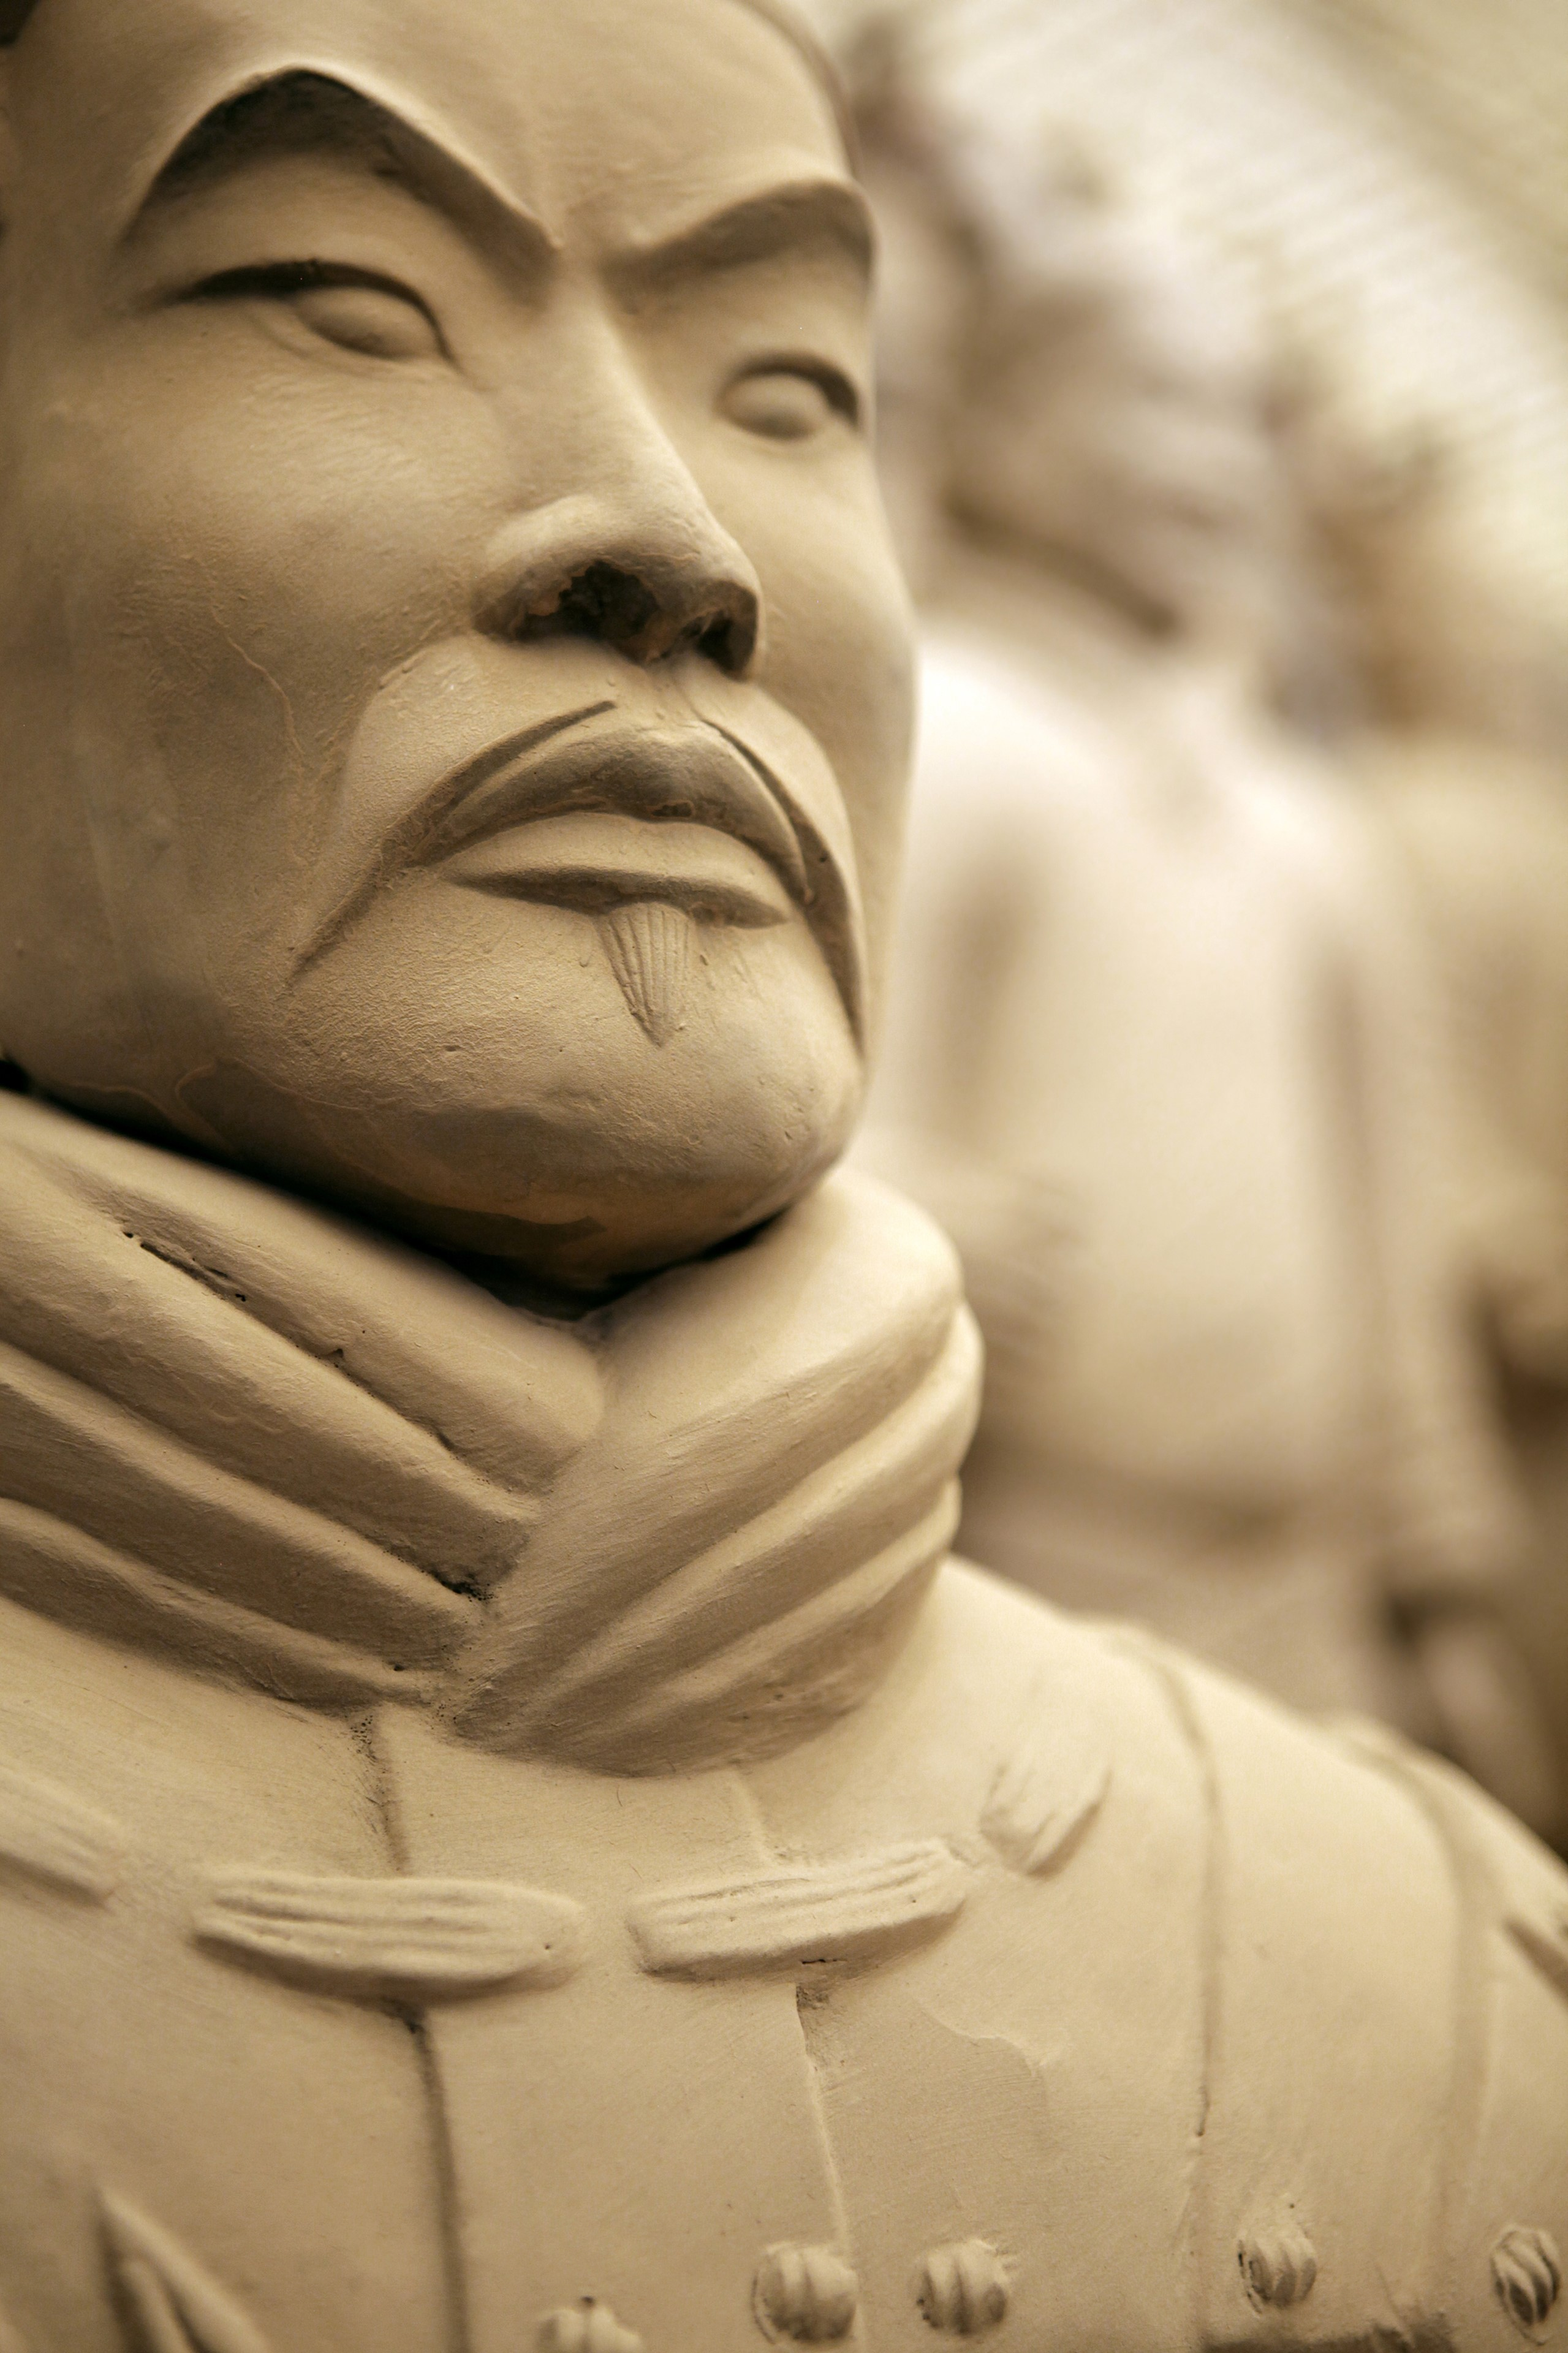 One of the mighty Terracotta Warriors